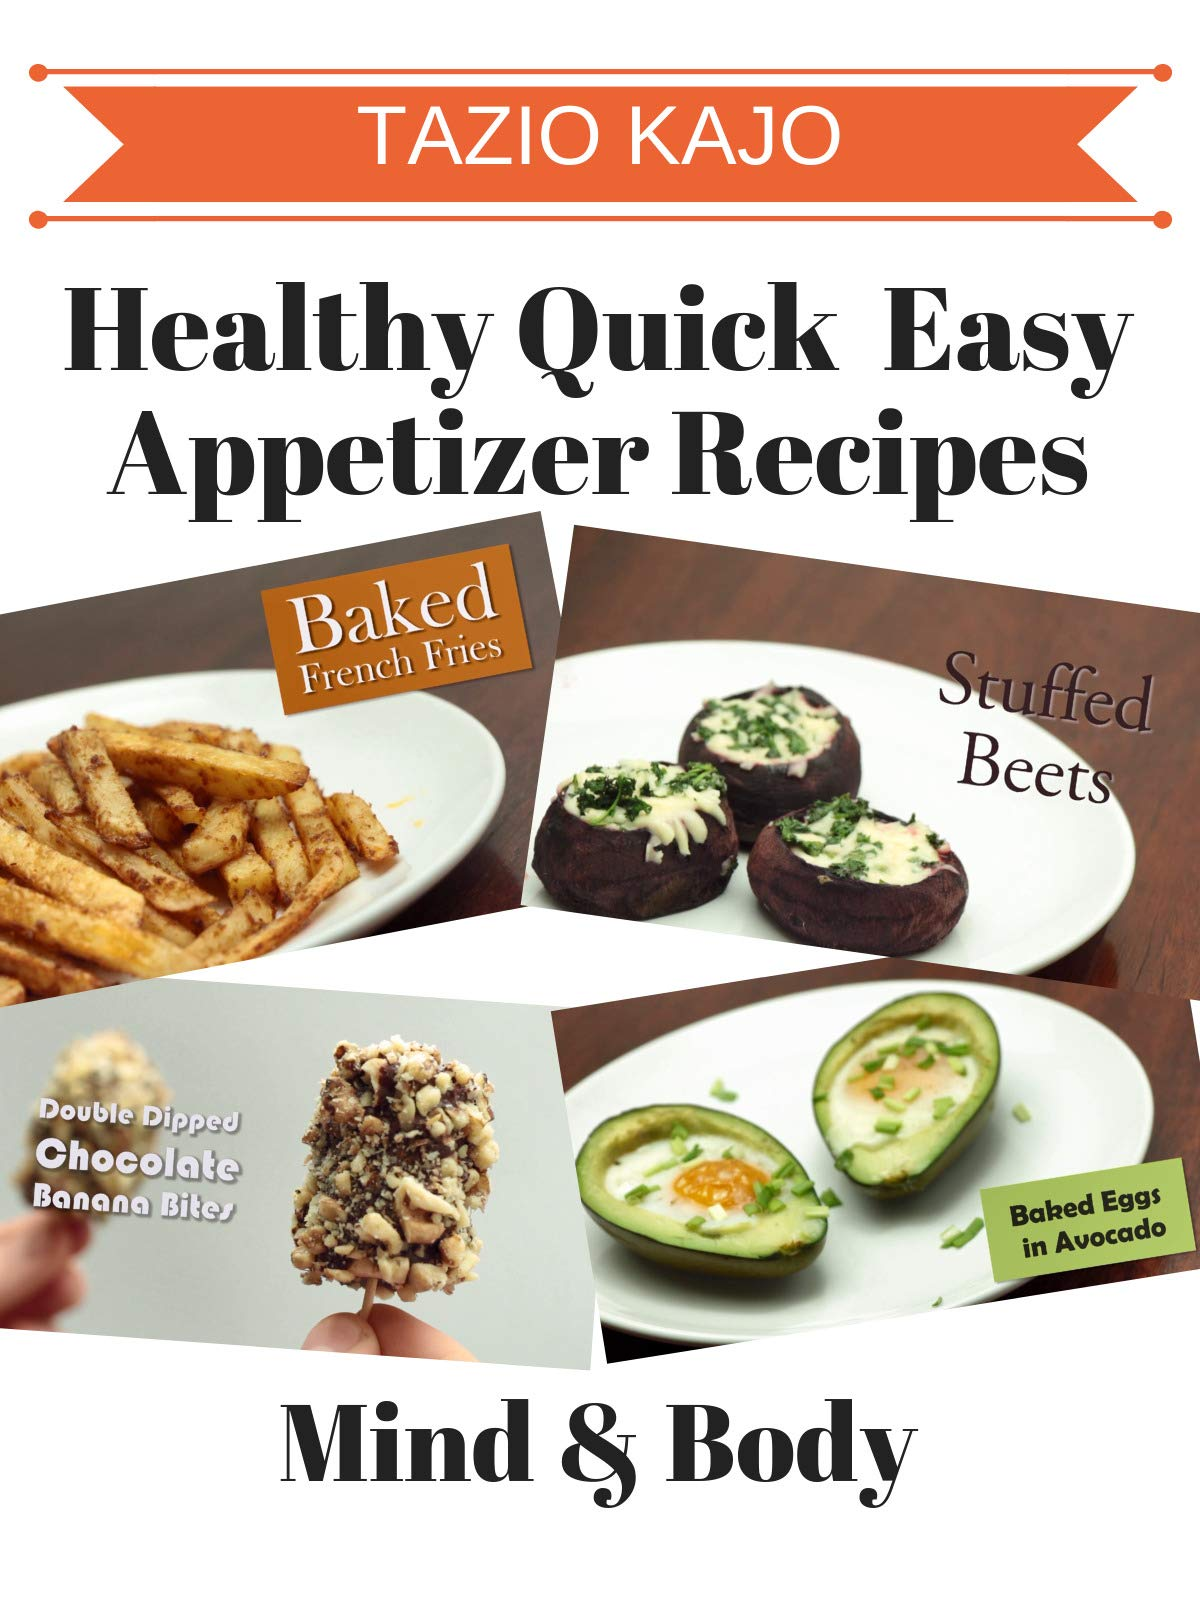 Healthy Quick Easy Appetizer Recipes on Amazon Prime Instant Video UK